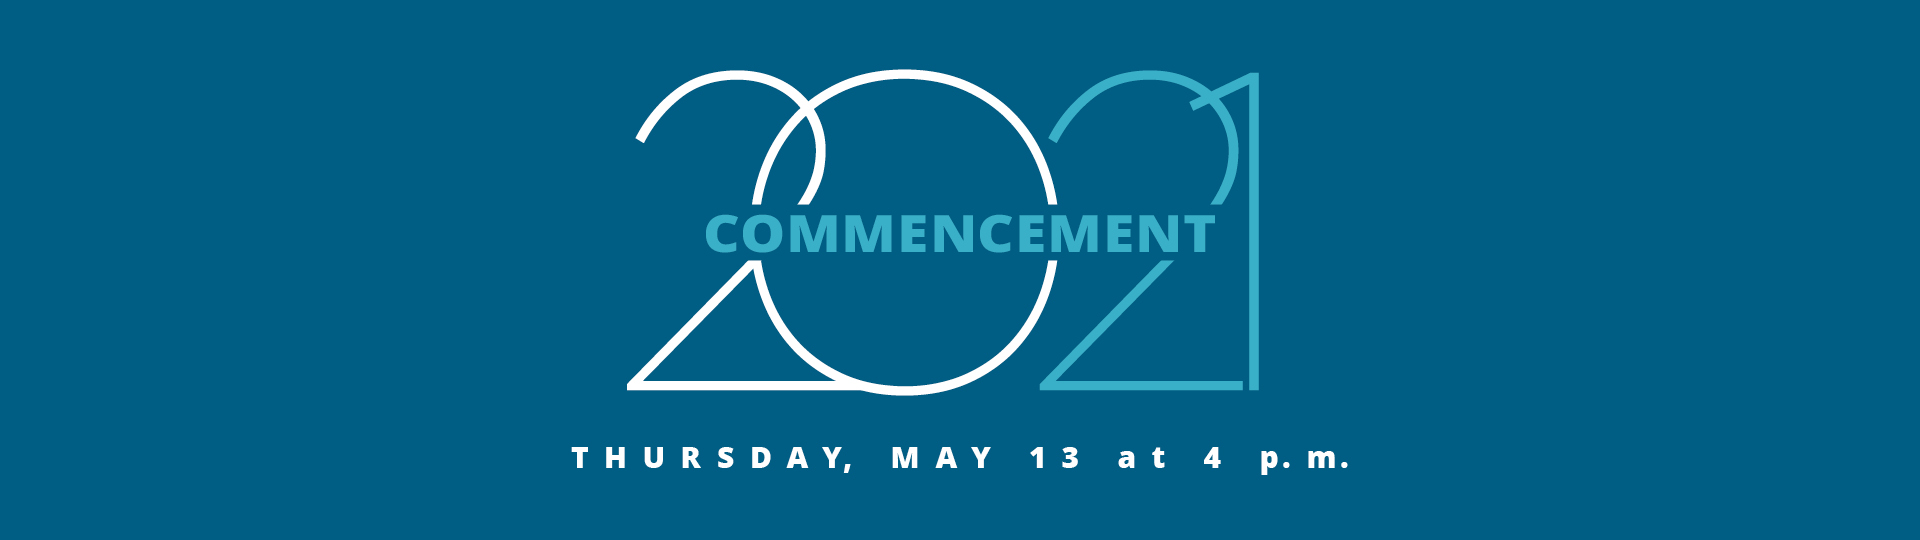 Commencement 2018 Banner